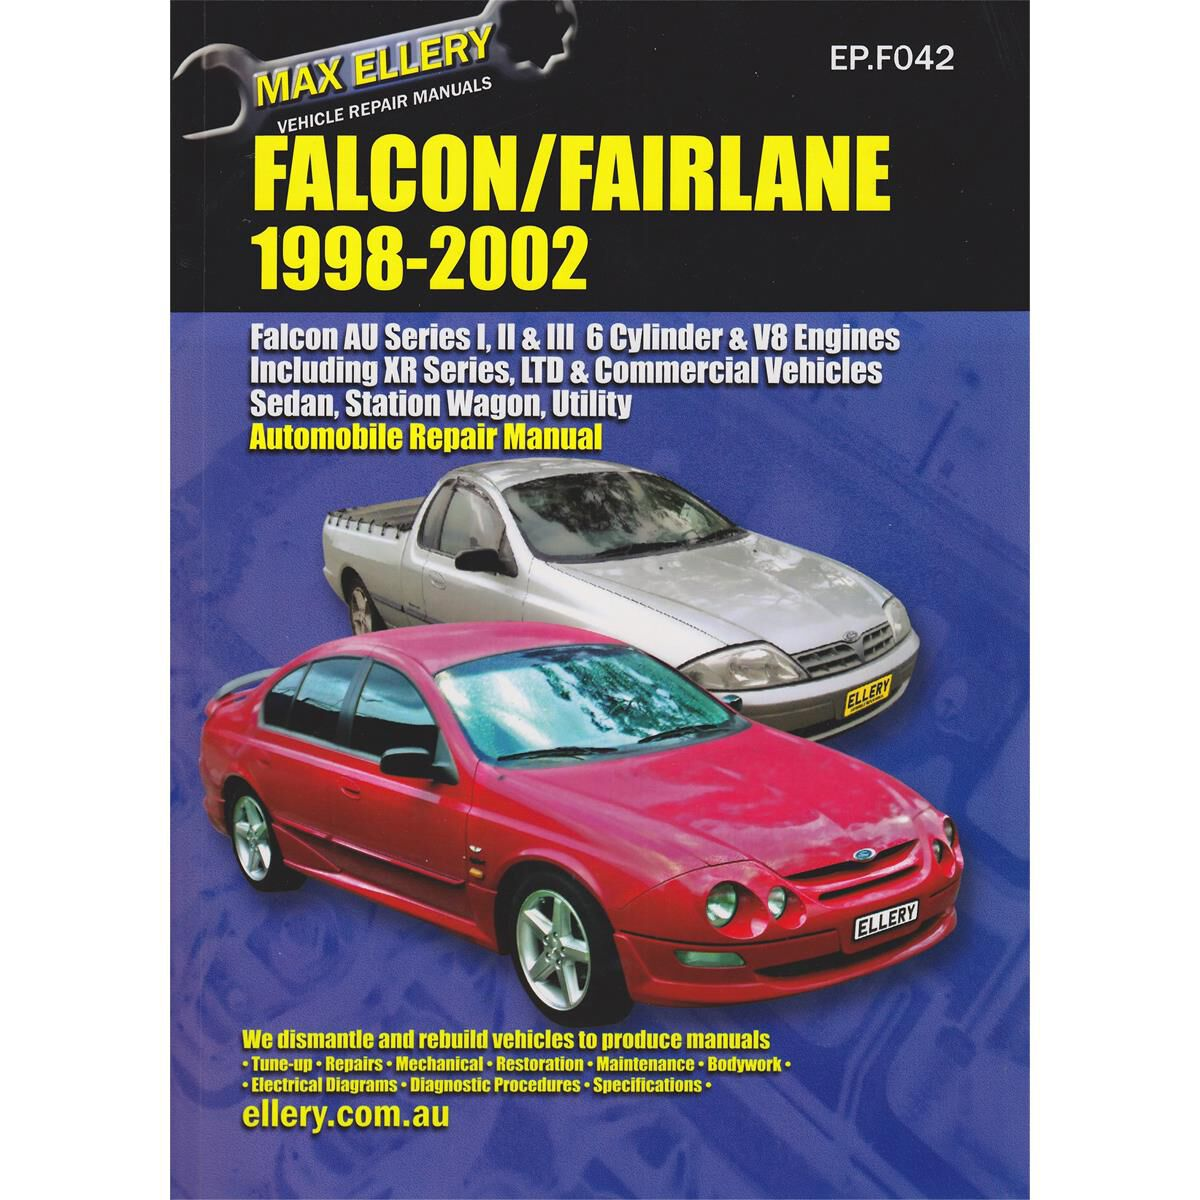 FACTORY WORKSHOP SERVICE REPAIR MANUAL FORD FALCON 1998-2002 WIRING